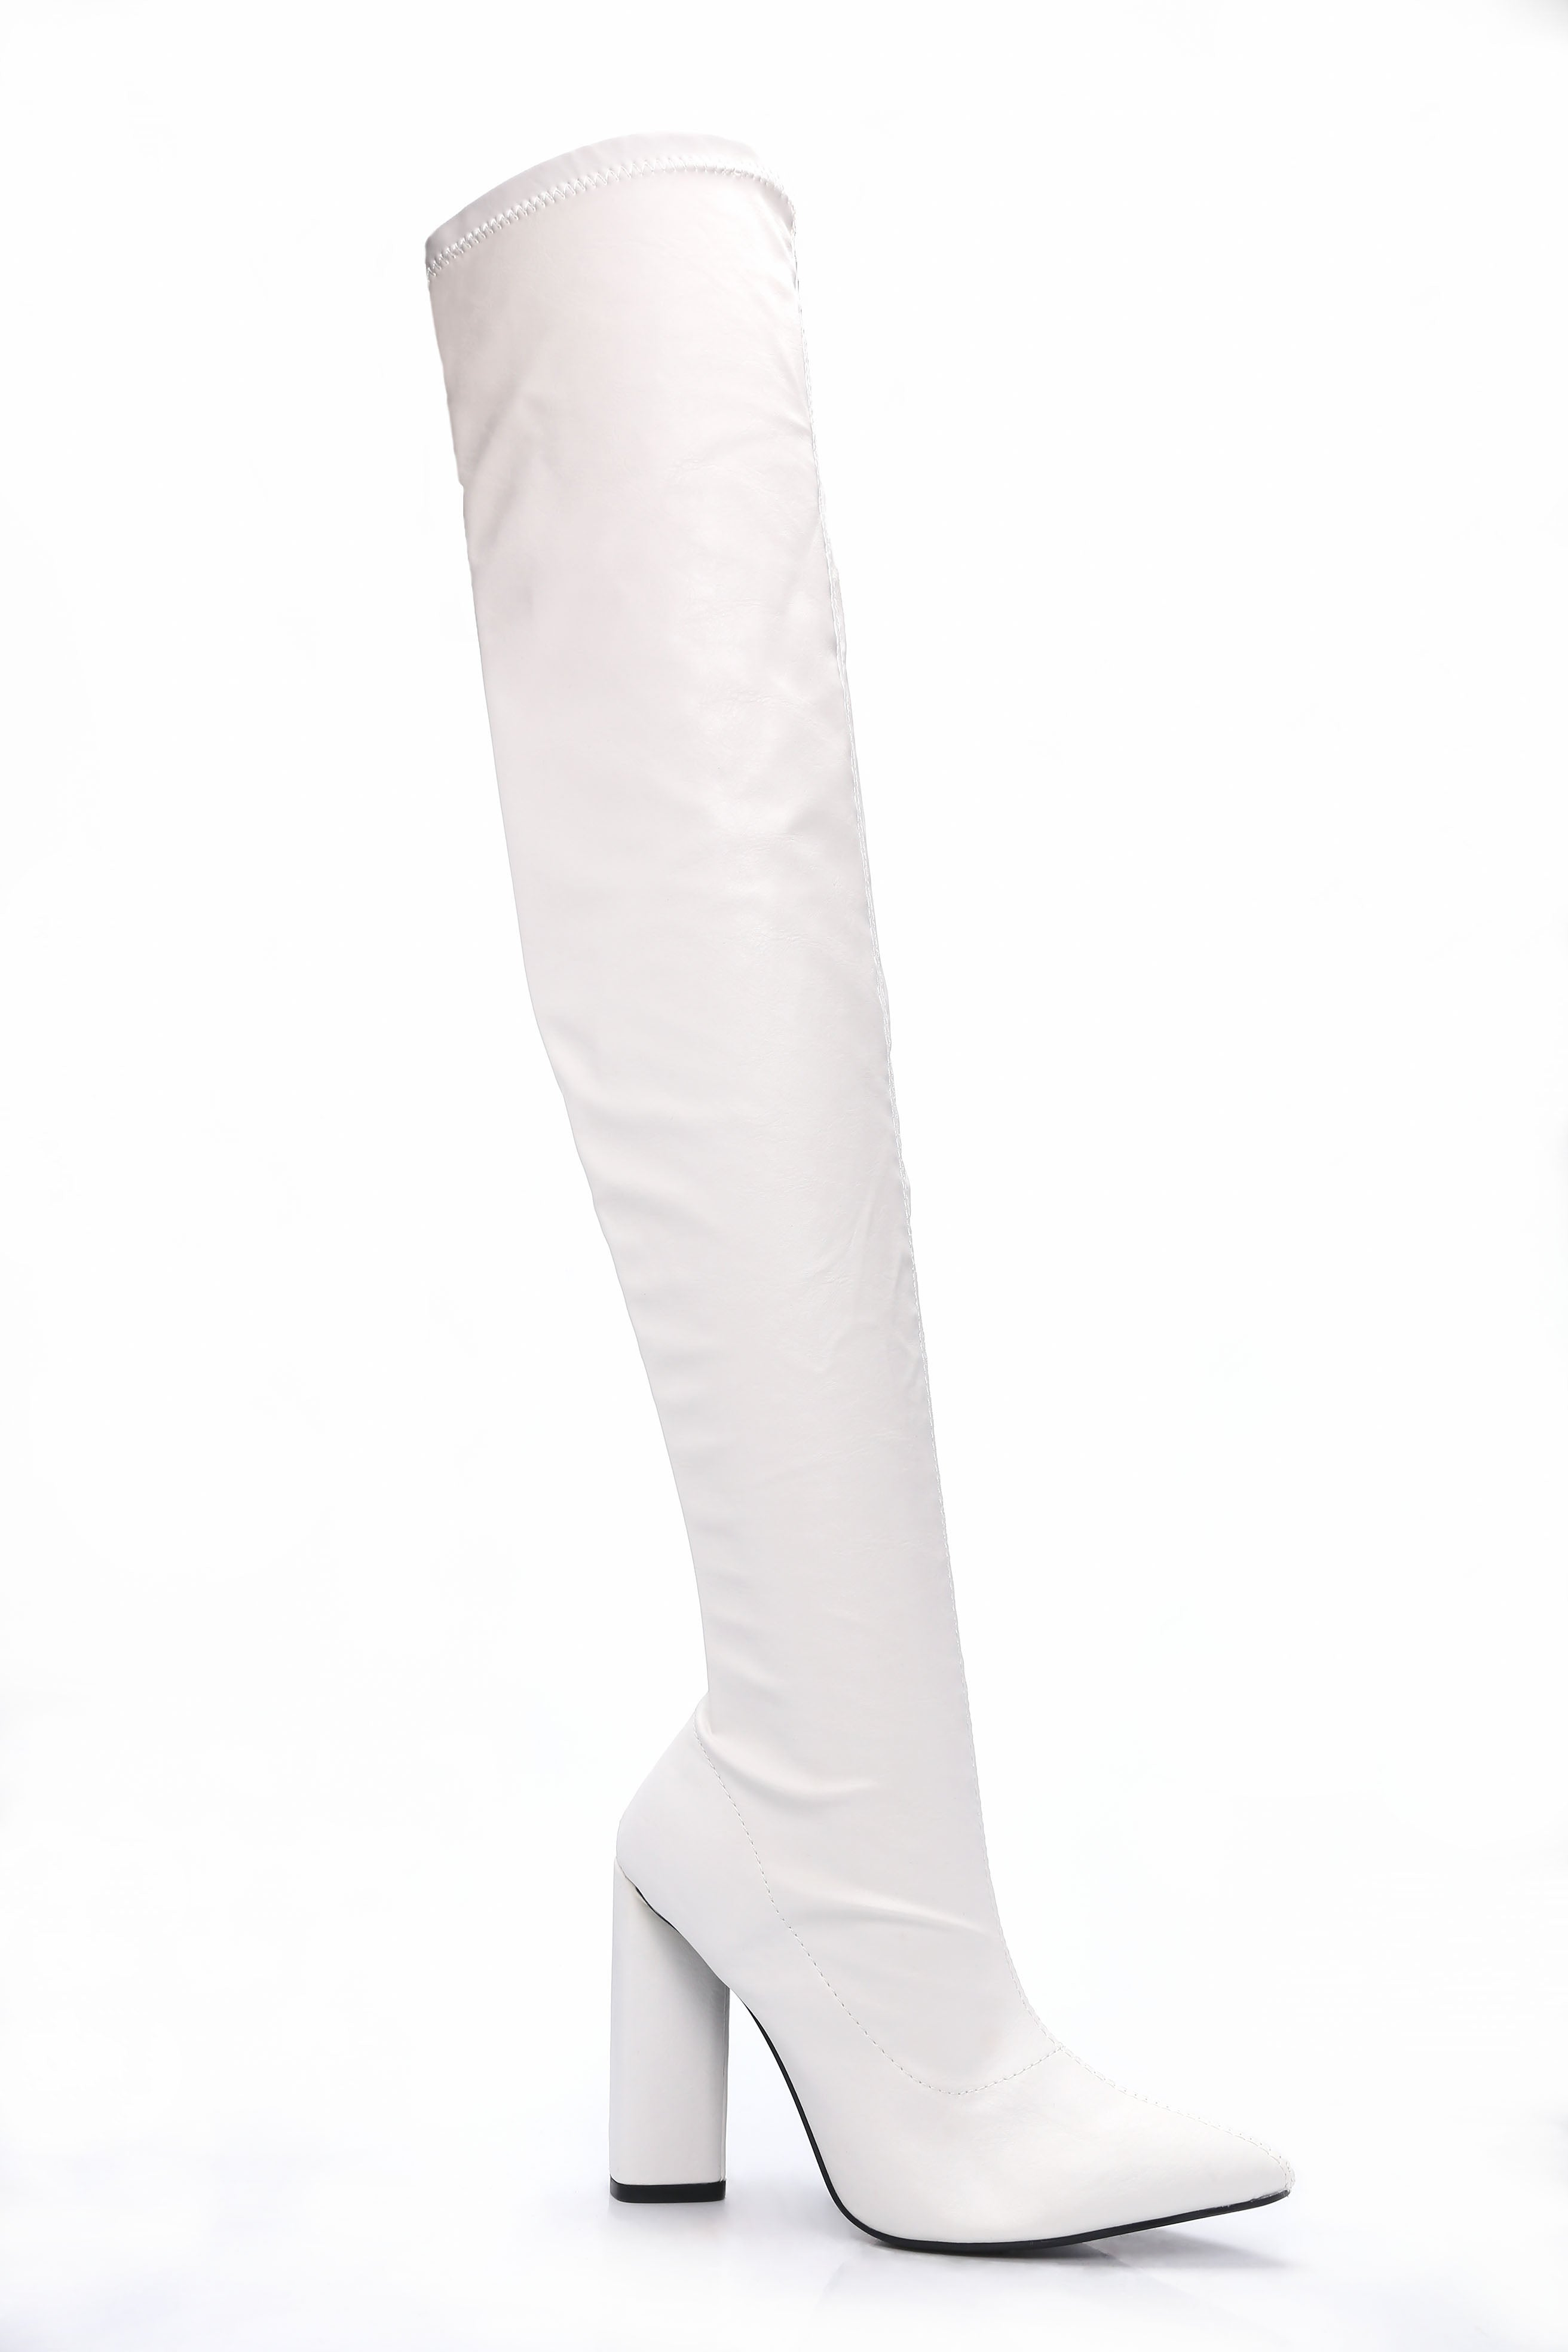 8d5bbf5bb2a So Serious Over The Knee Boot - White